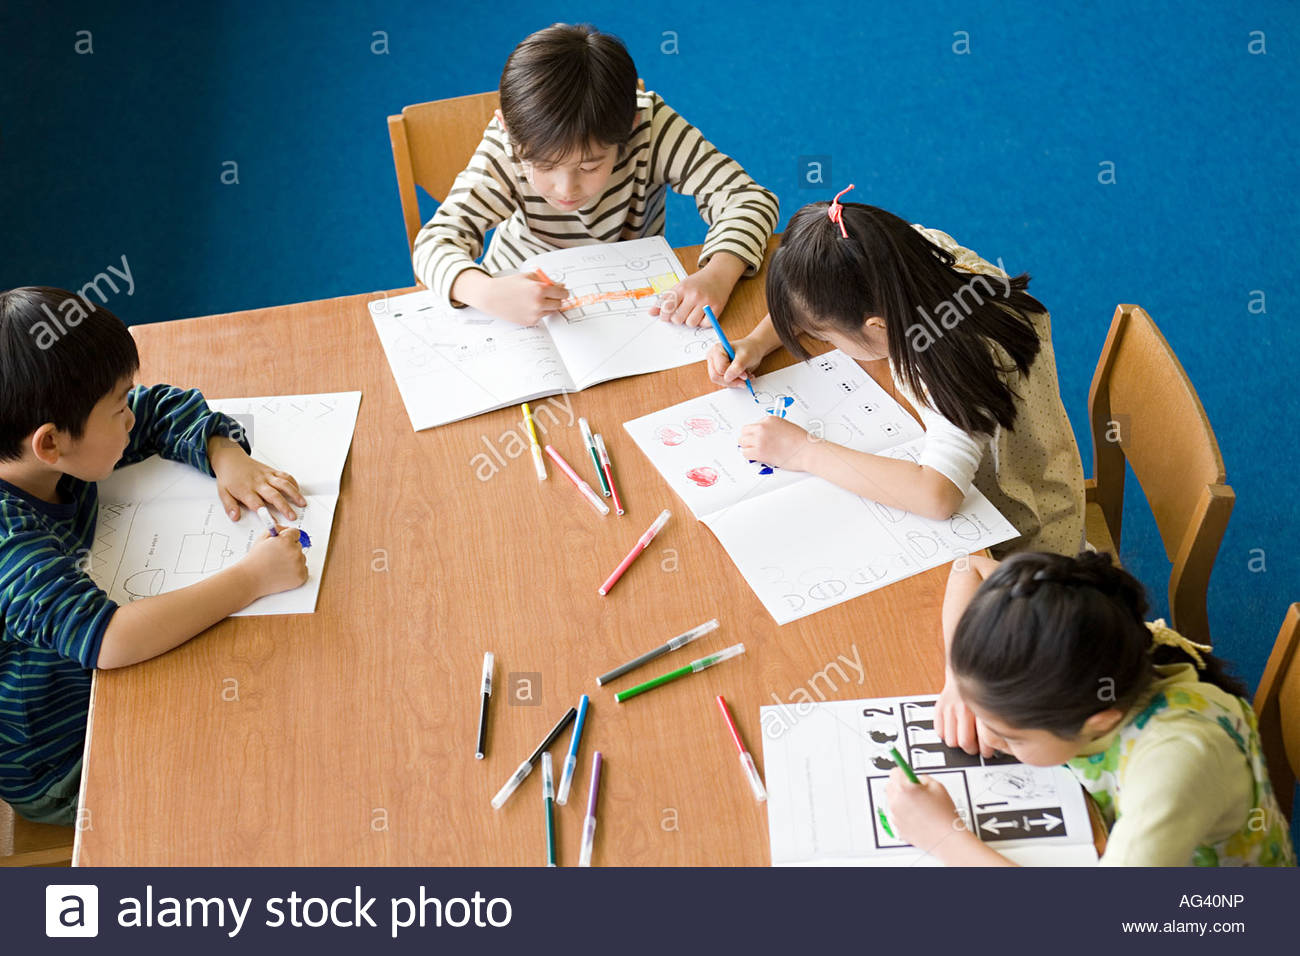 School children colouring in Stock Photo Royalty Free Image